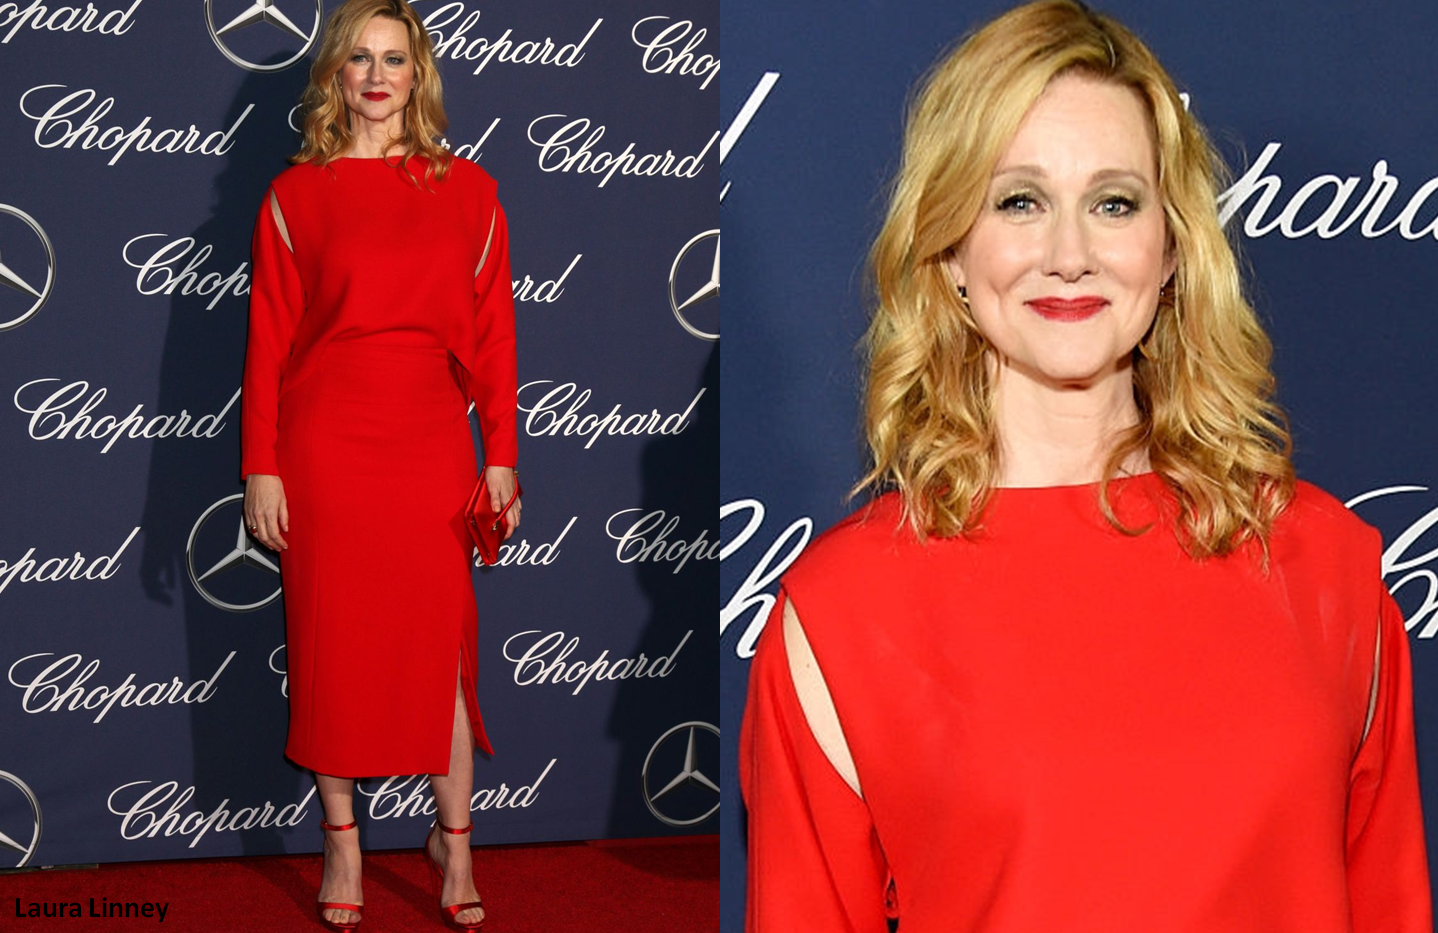 Lauren Linney at 28th Annual Palm Spring International Film Festival Awards wearing red dress - Project for TOM FORD - pattern making - dressmaking - fitting / tailoring - managing - garment technology consult